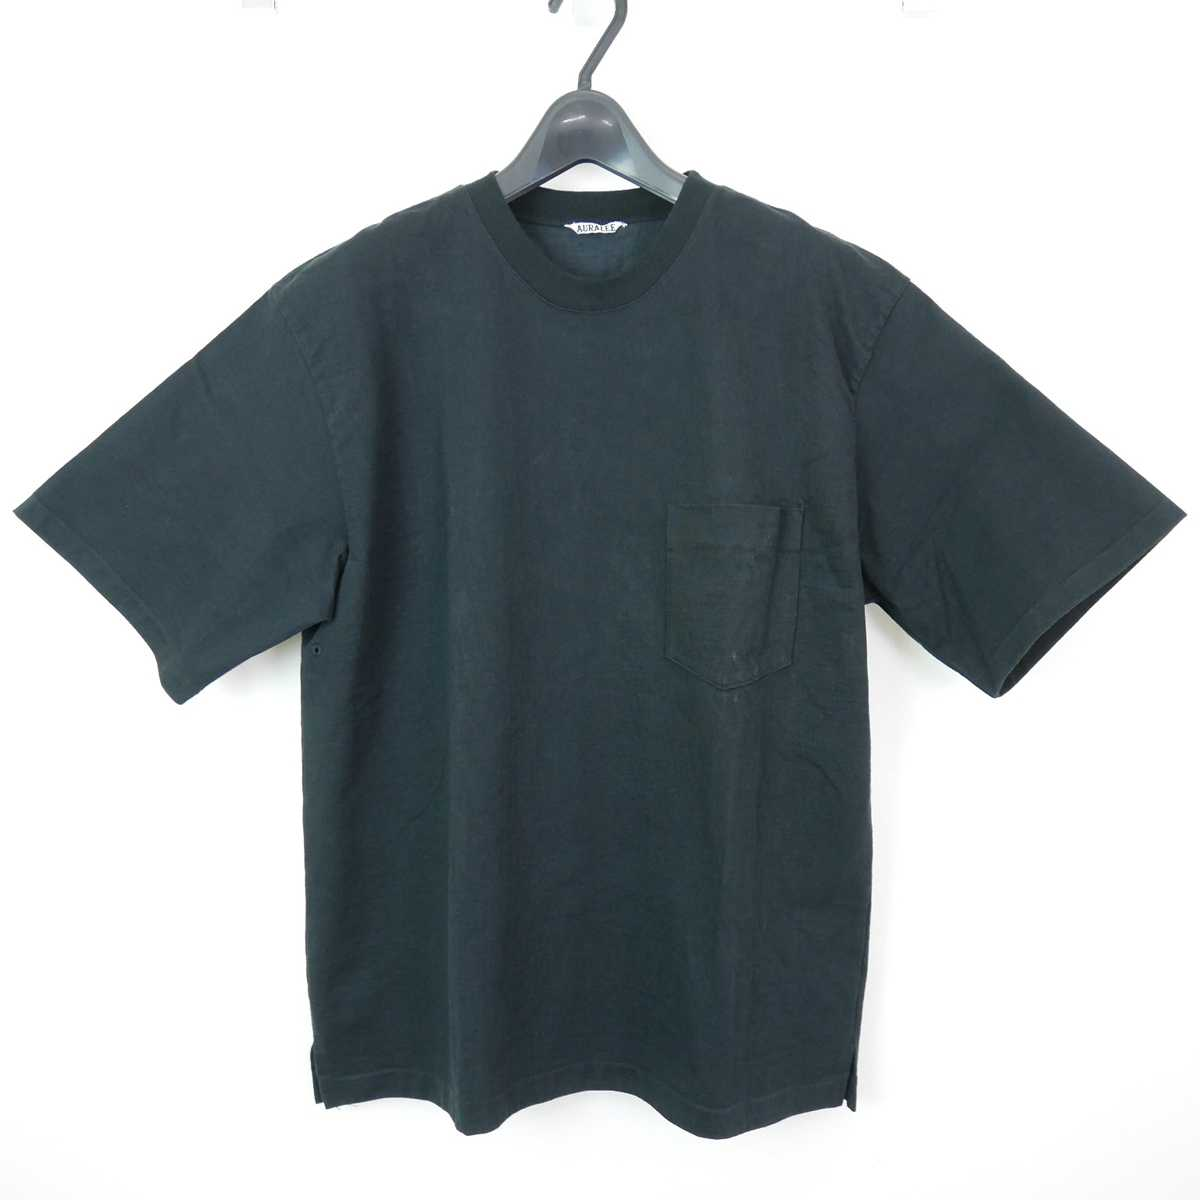 19SS AURALEE オーラリー STAND UP TEE コットン 半袖 無地 スタンドアップ Tシャツ カットソー 黒 5 【中古】 DN-10998